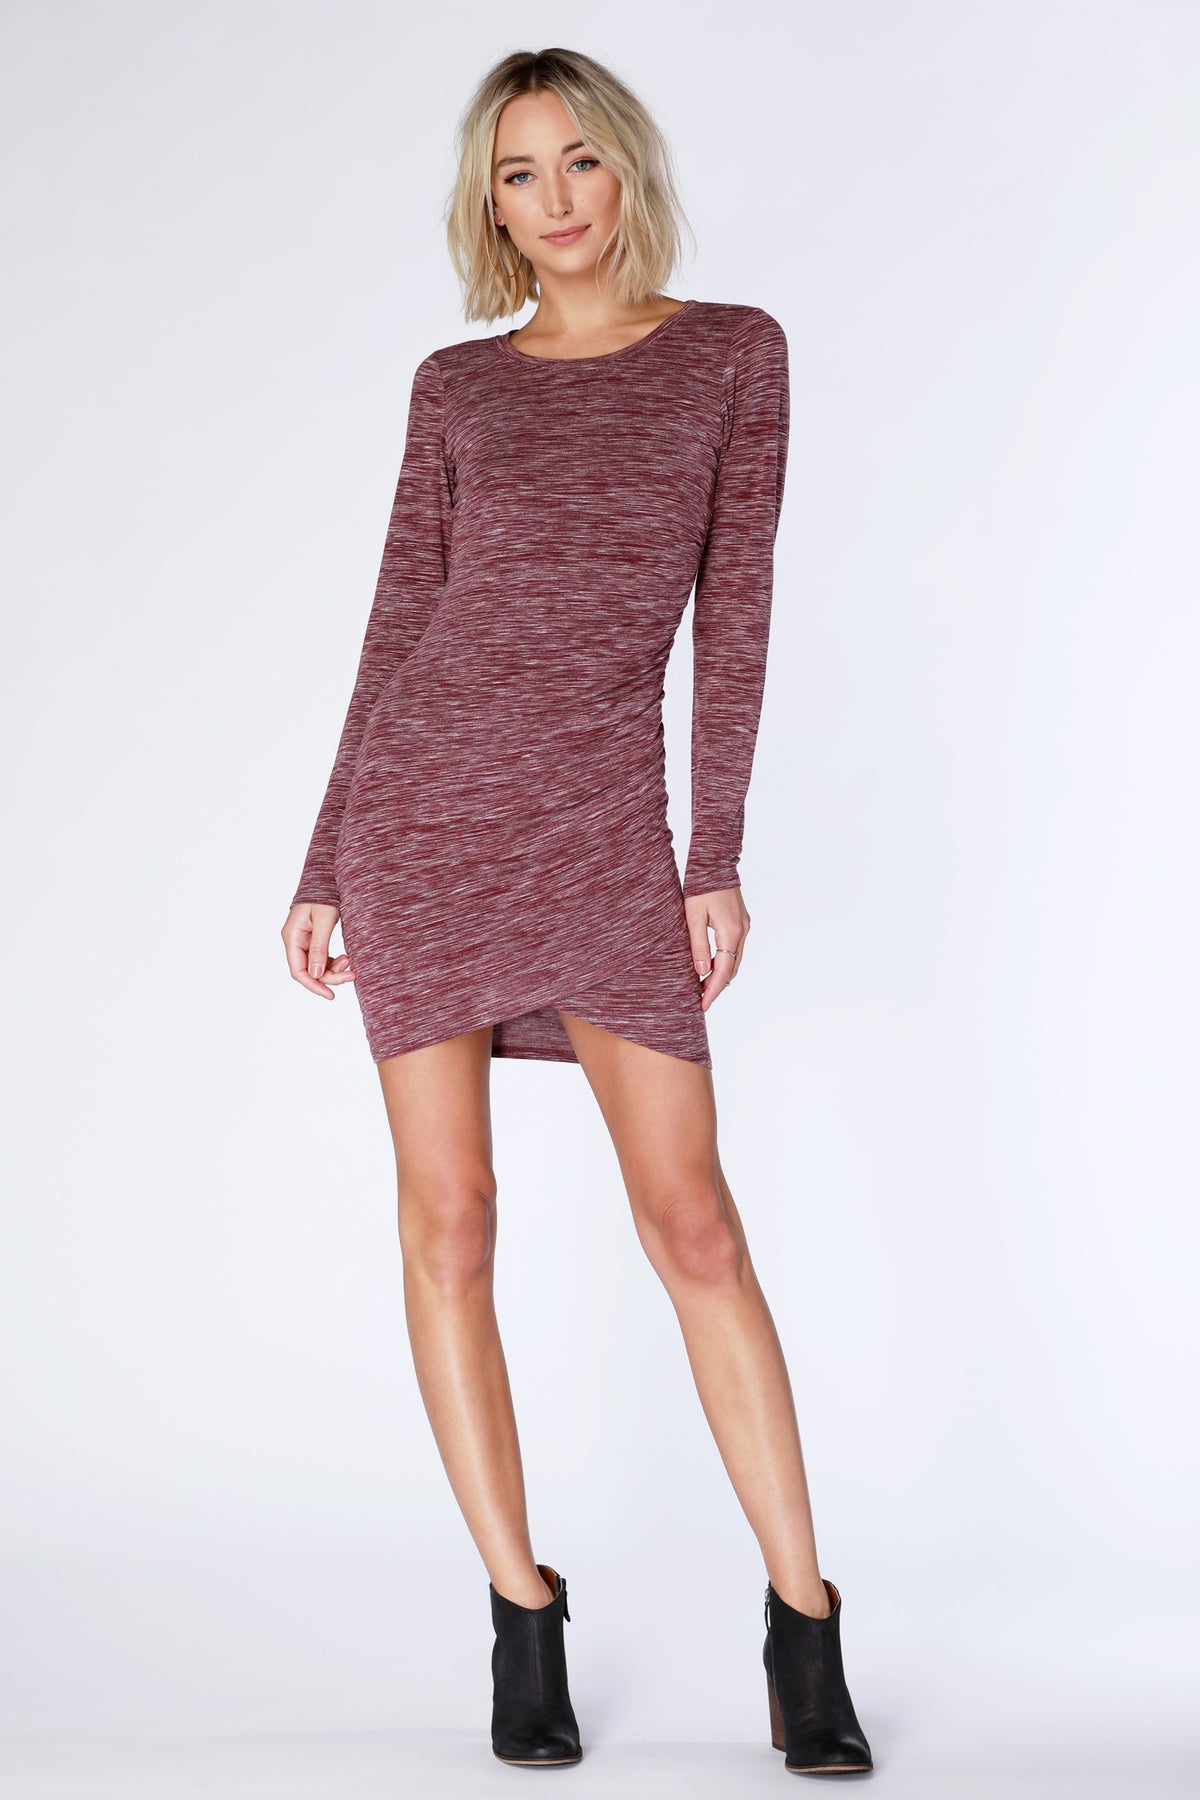 Long Sleeve Surplice Dress - bobi Los Angeles